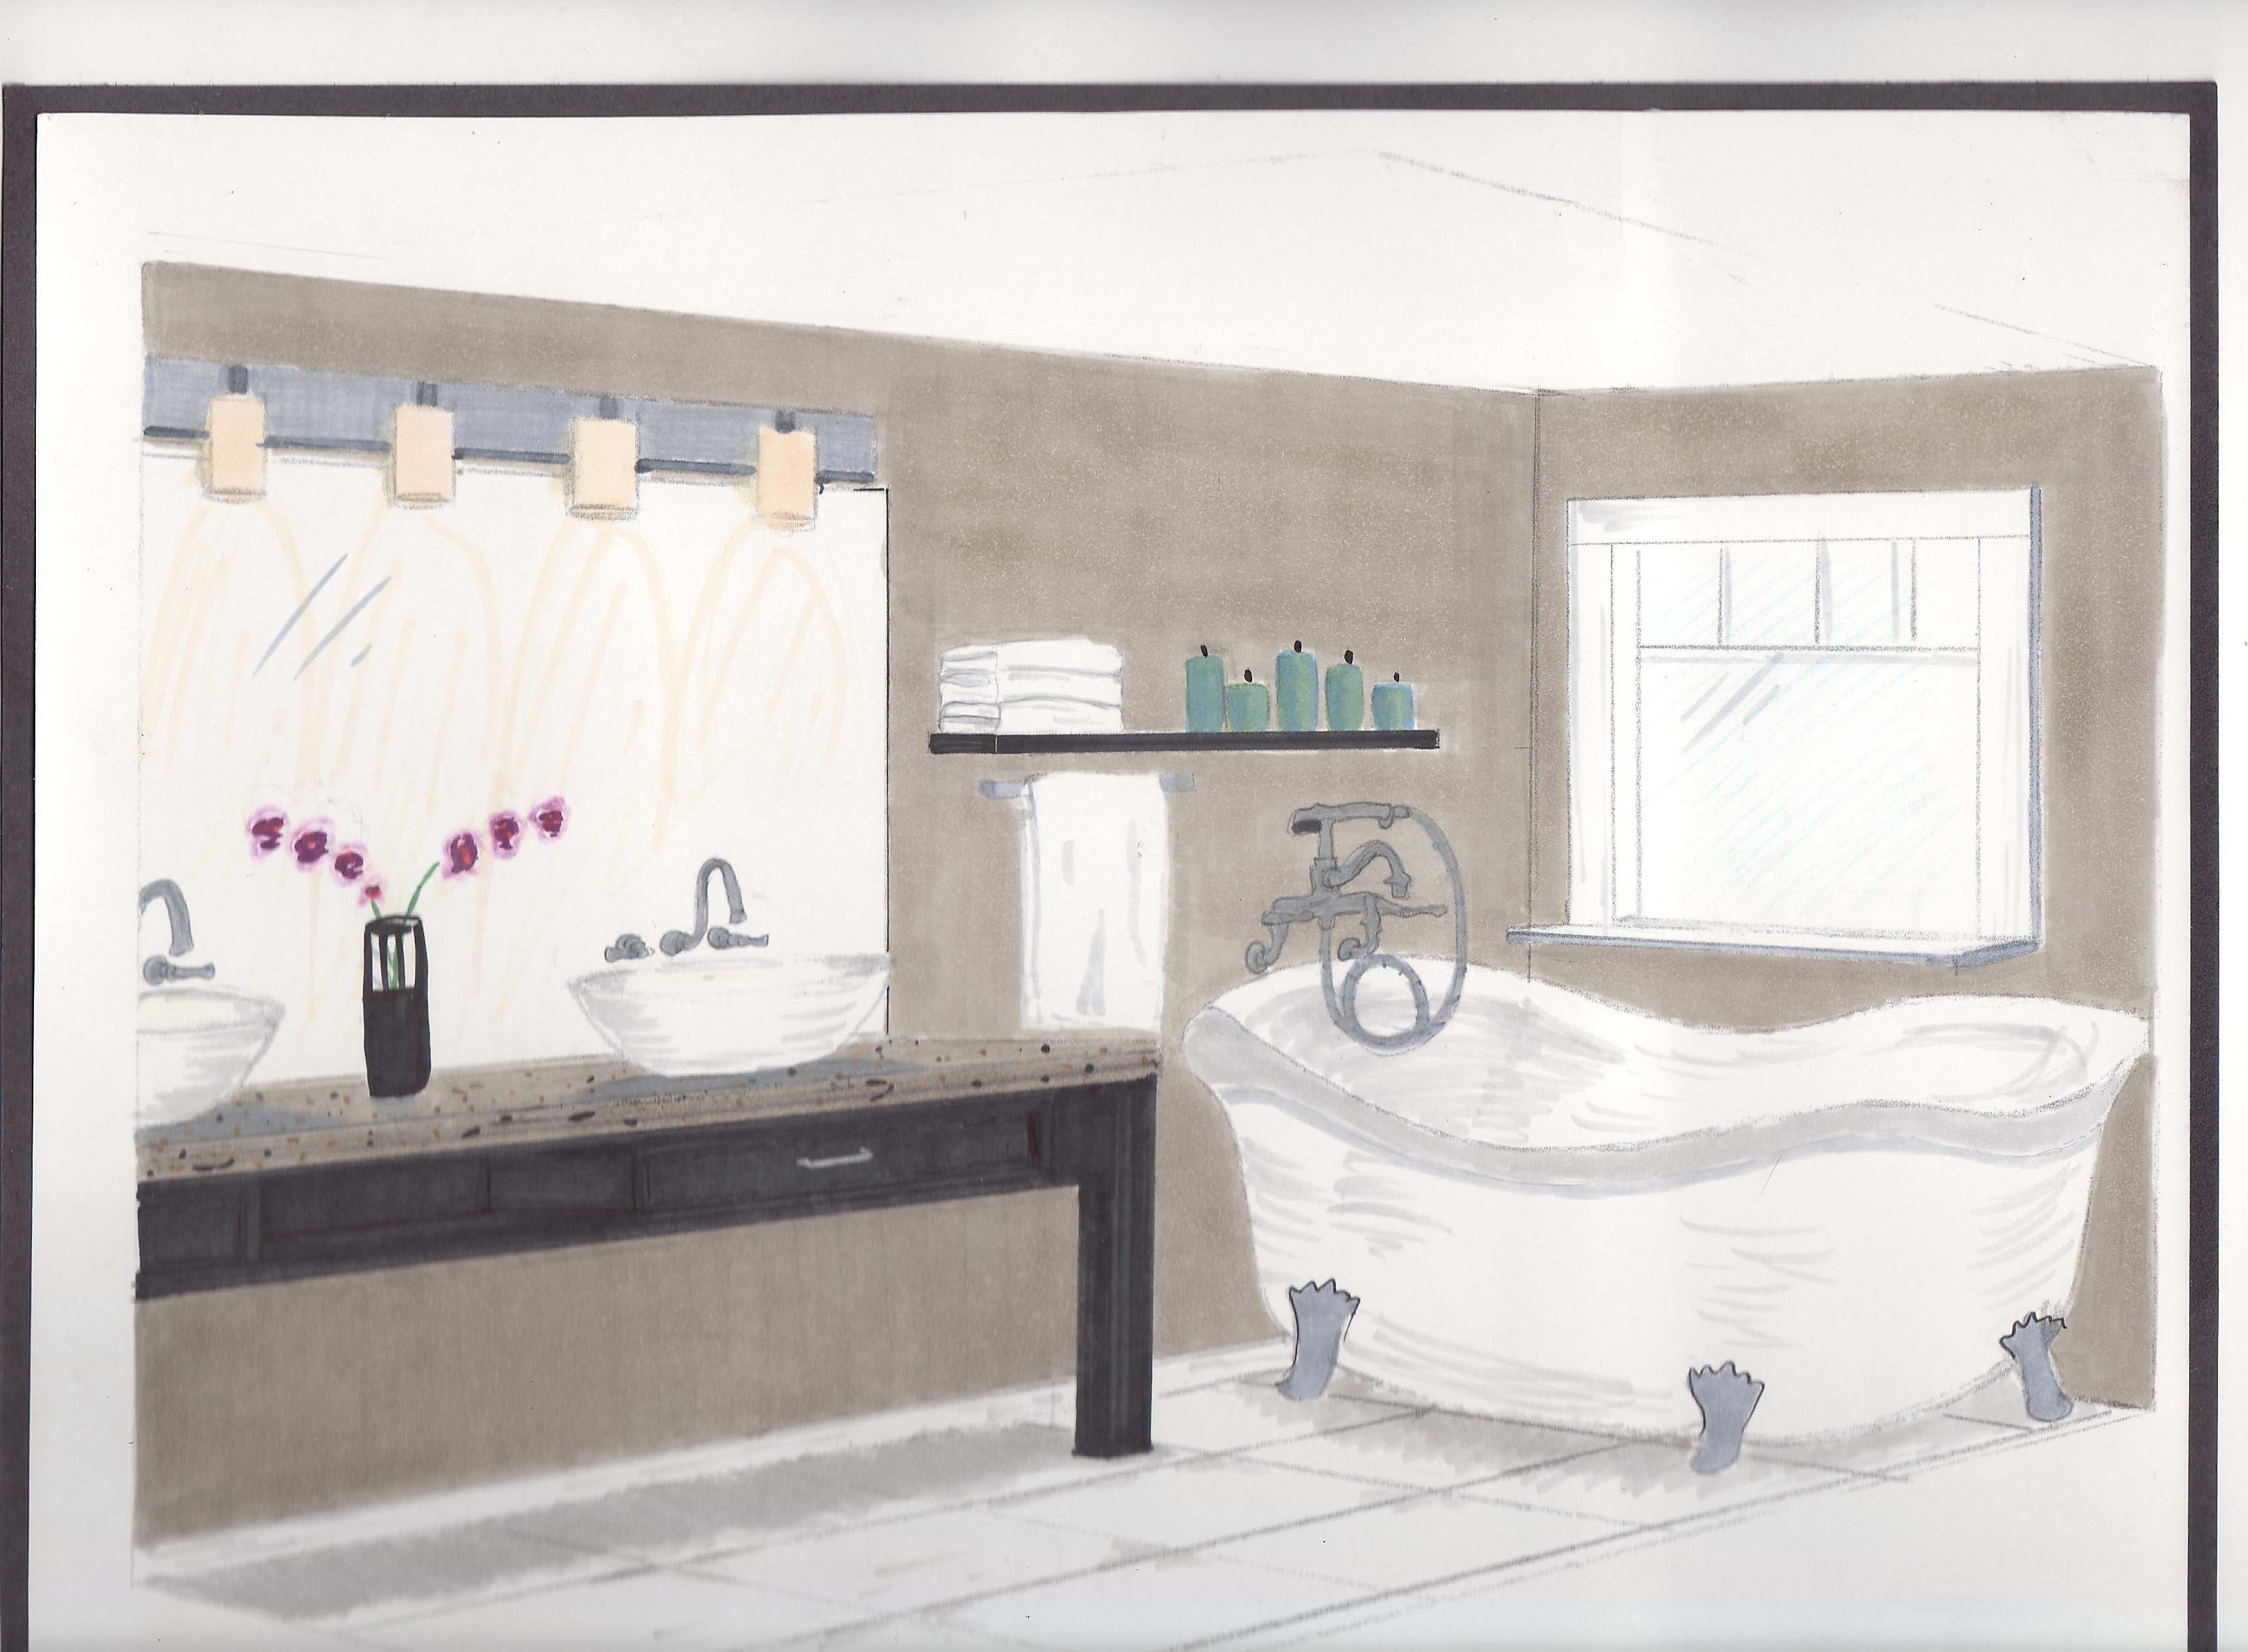 A keletnemet lanyok eneke   made in hungaria 457 - Bathroom Perspective Drawing Master Bathroom Perspective I Produced This In A Drawing Class Materials Fixtures